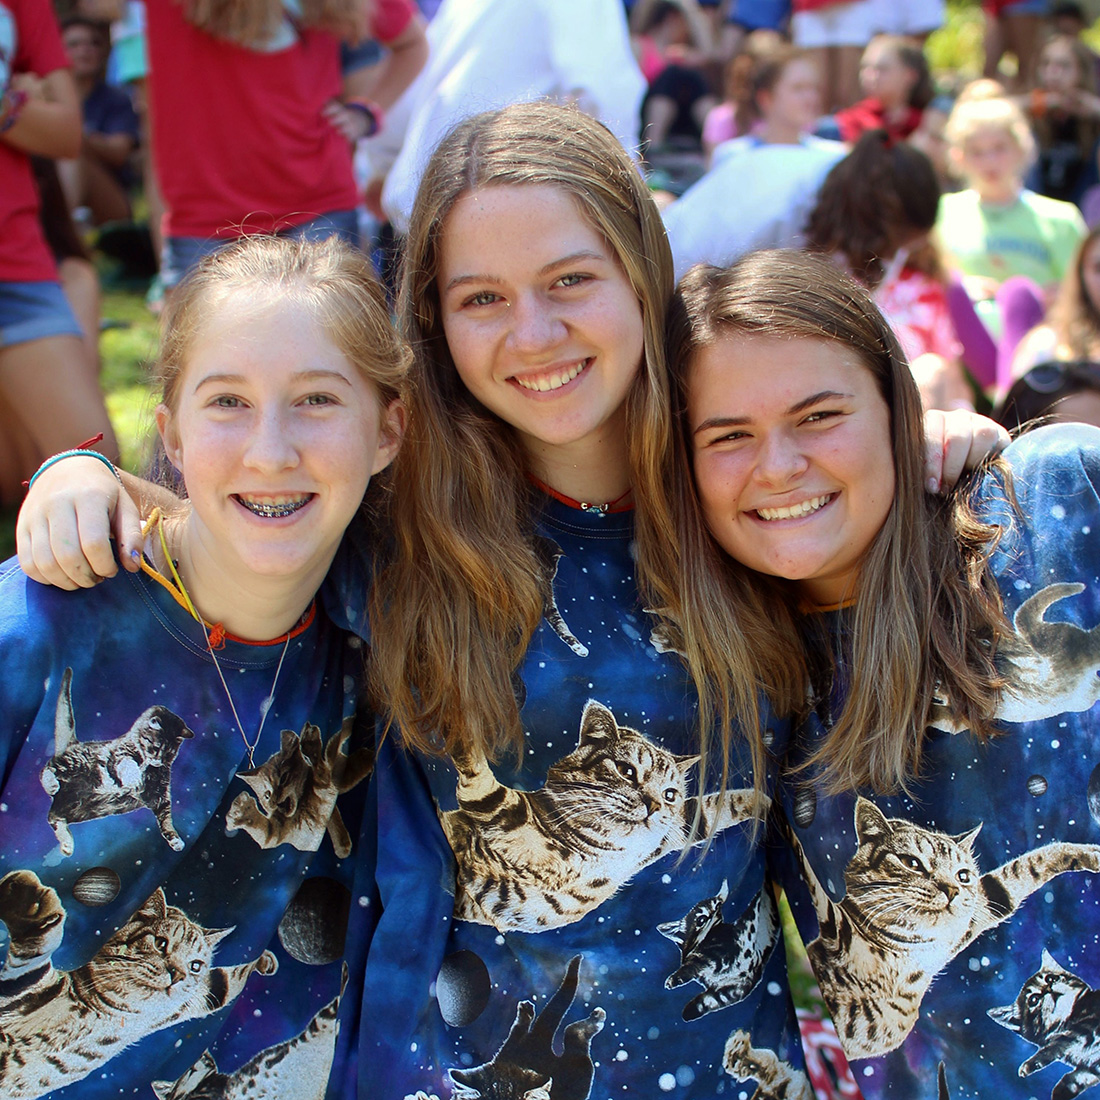 3 girl campers matching